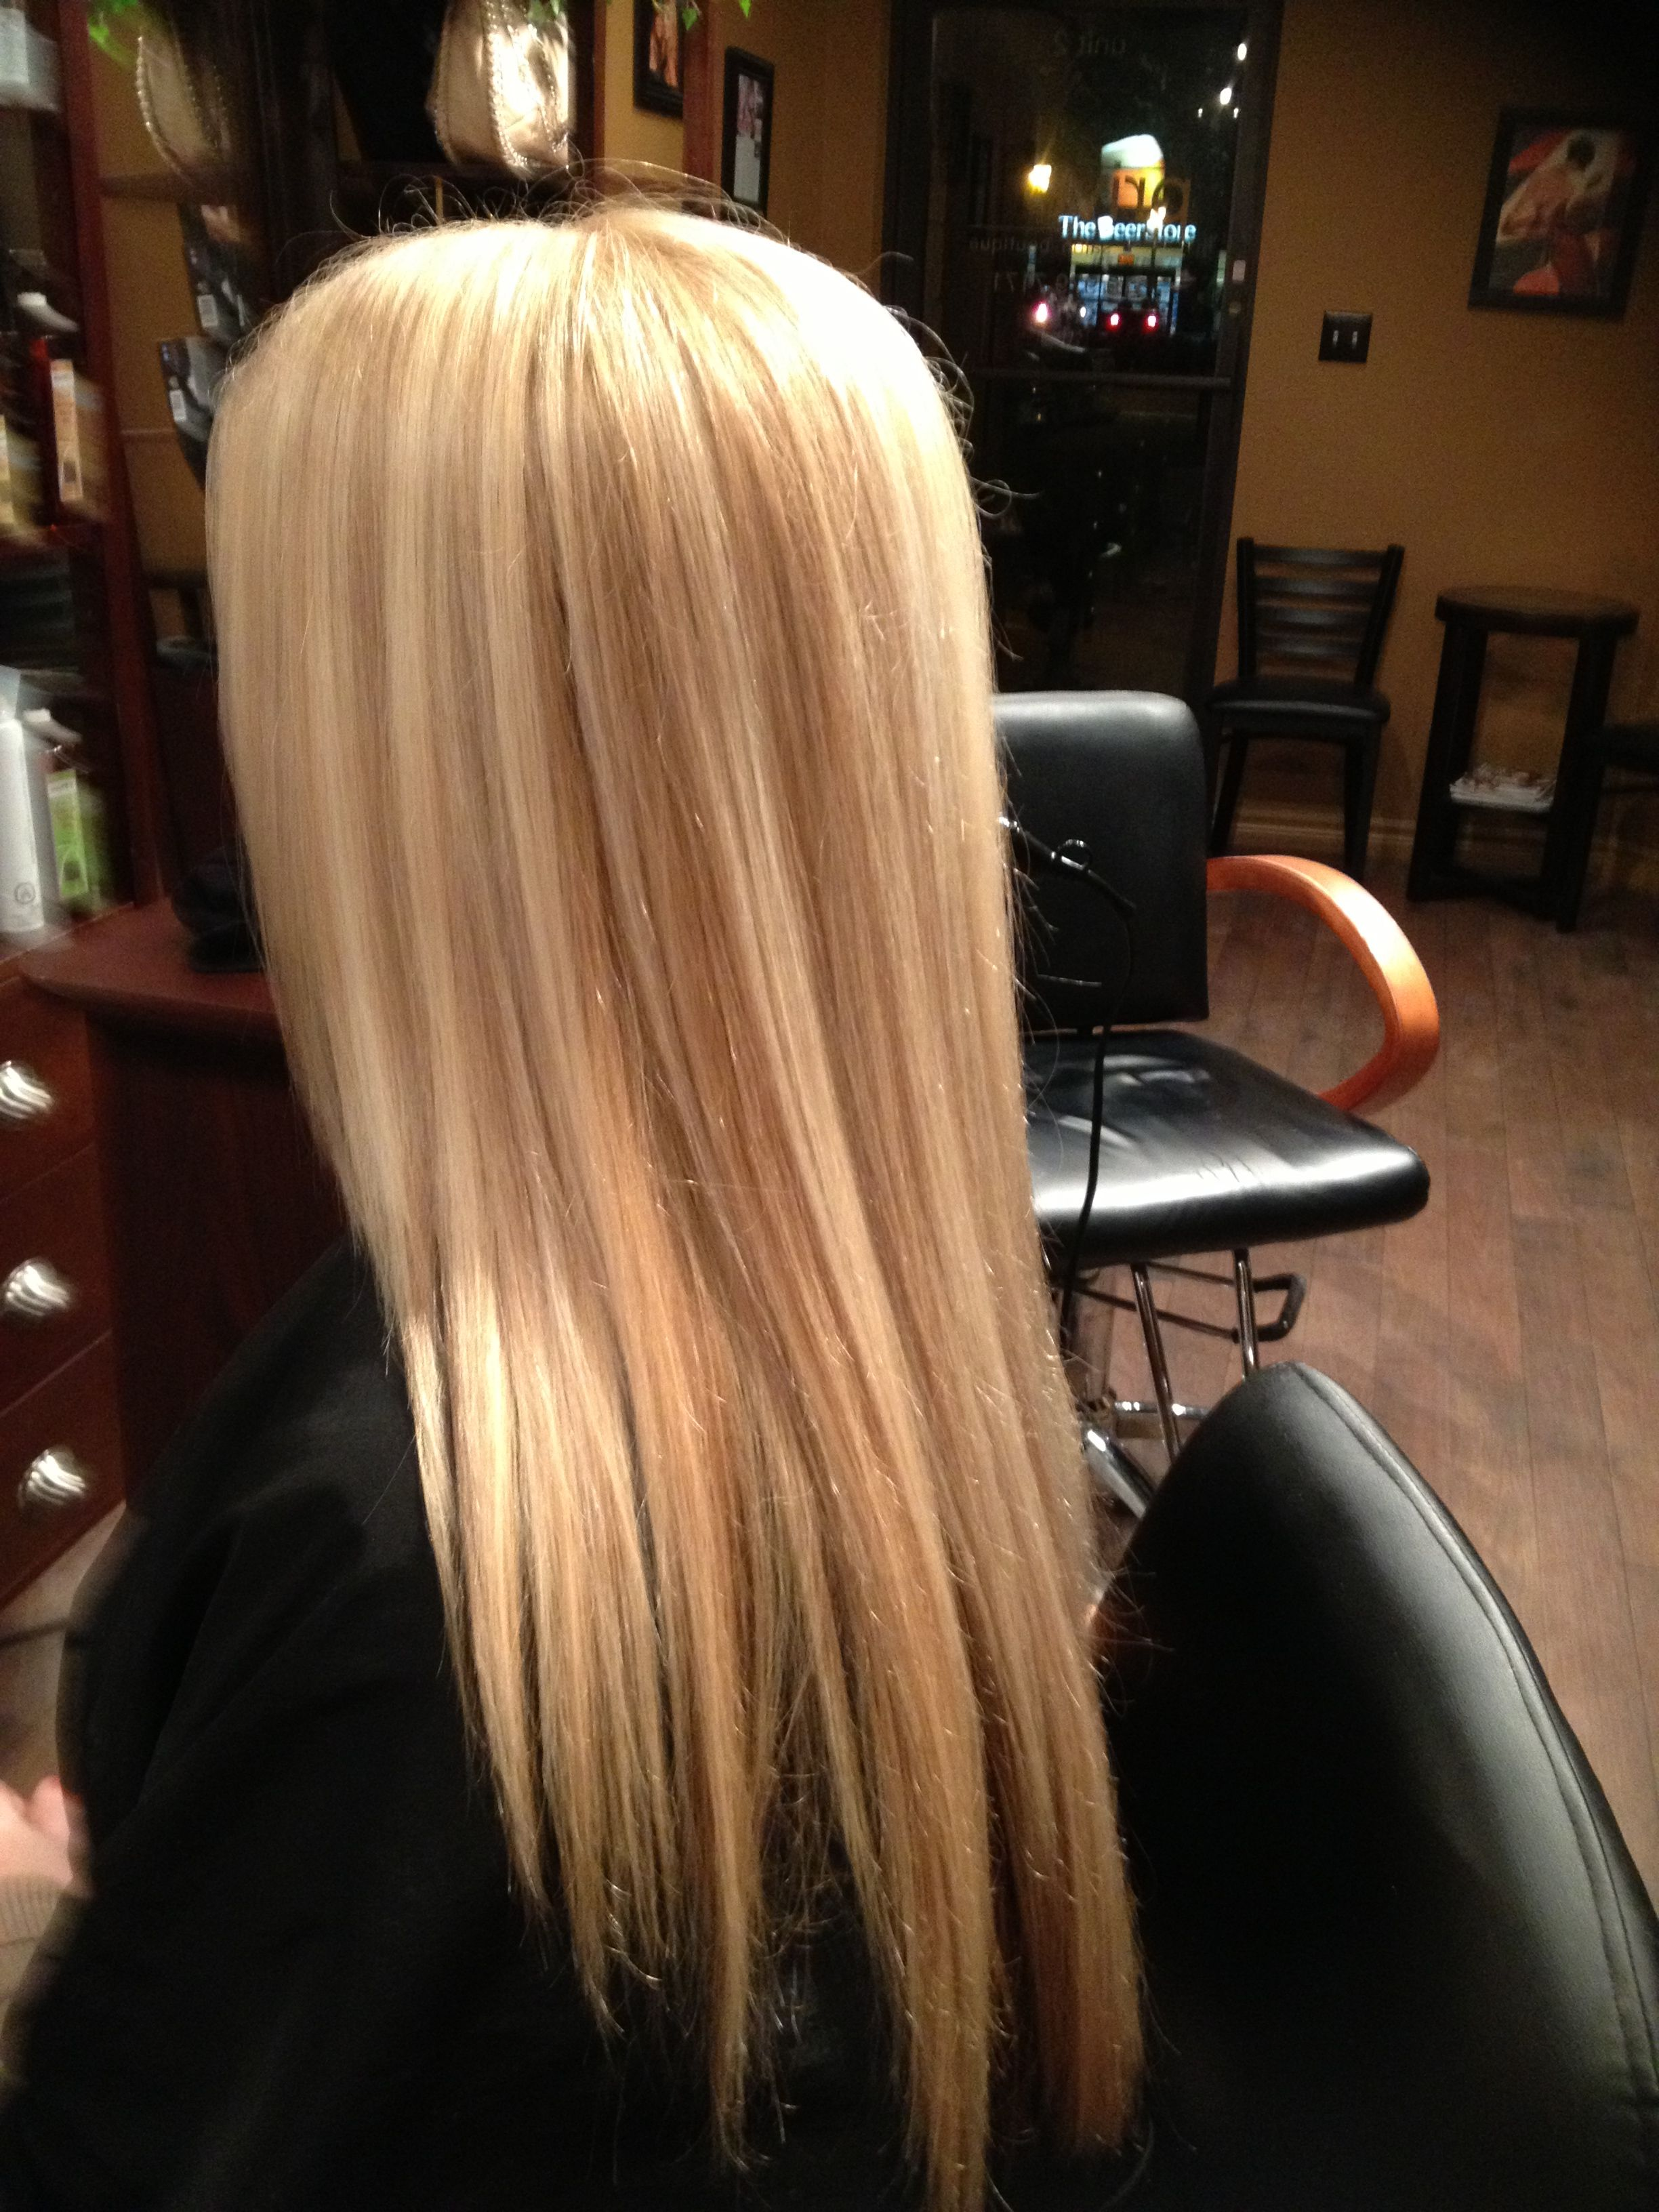 Wella Color Hair By Shannon Duffyive Salon Boutique Windsor On